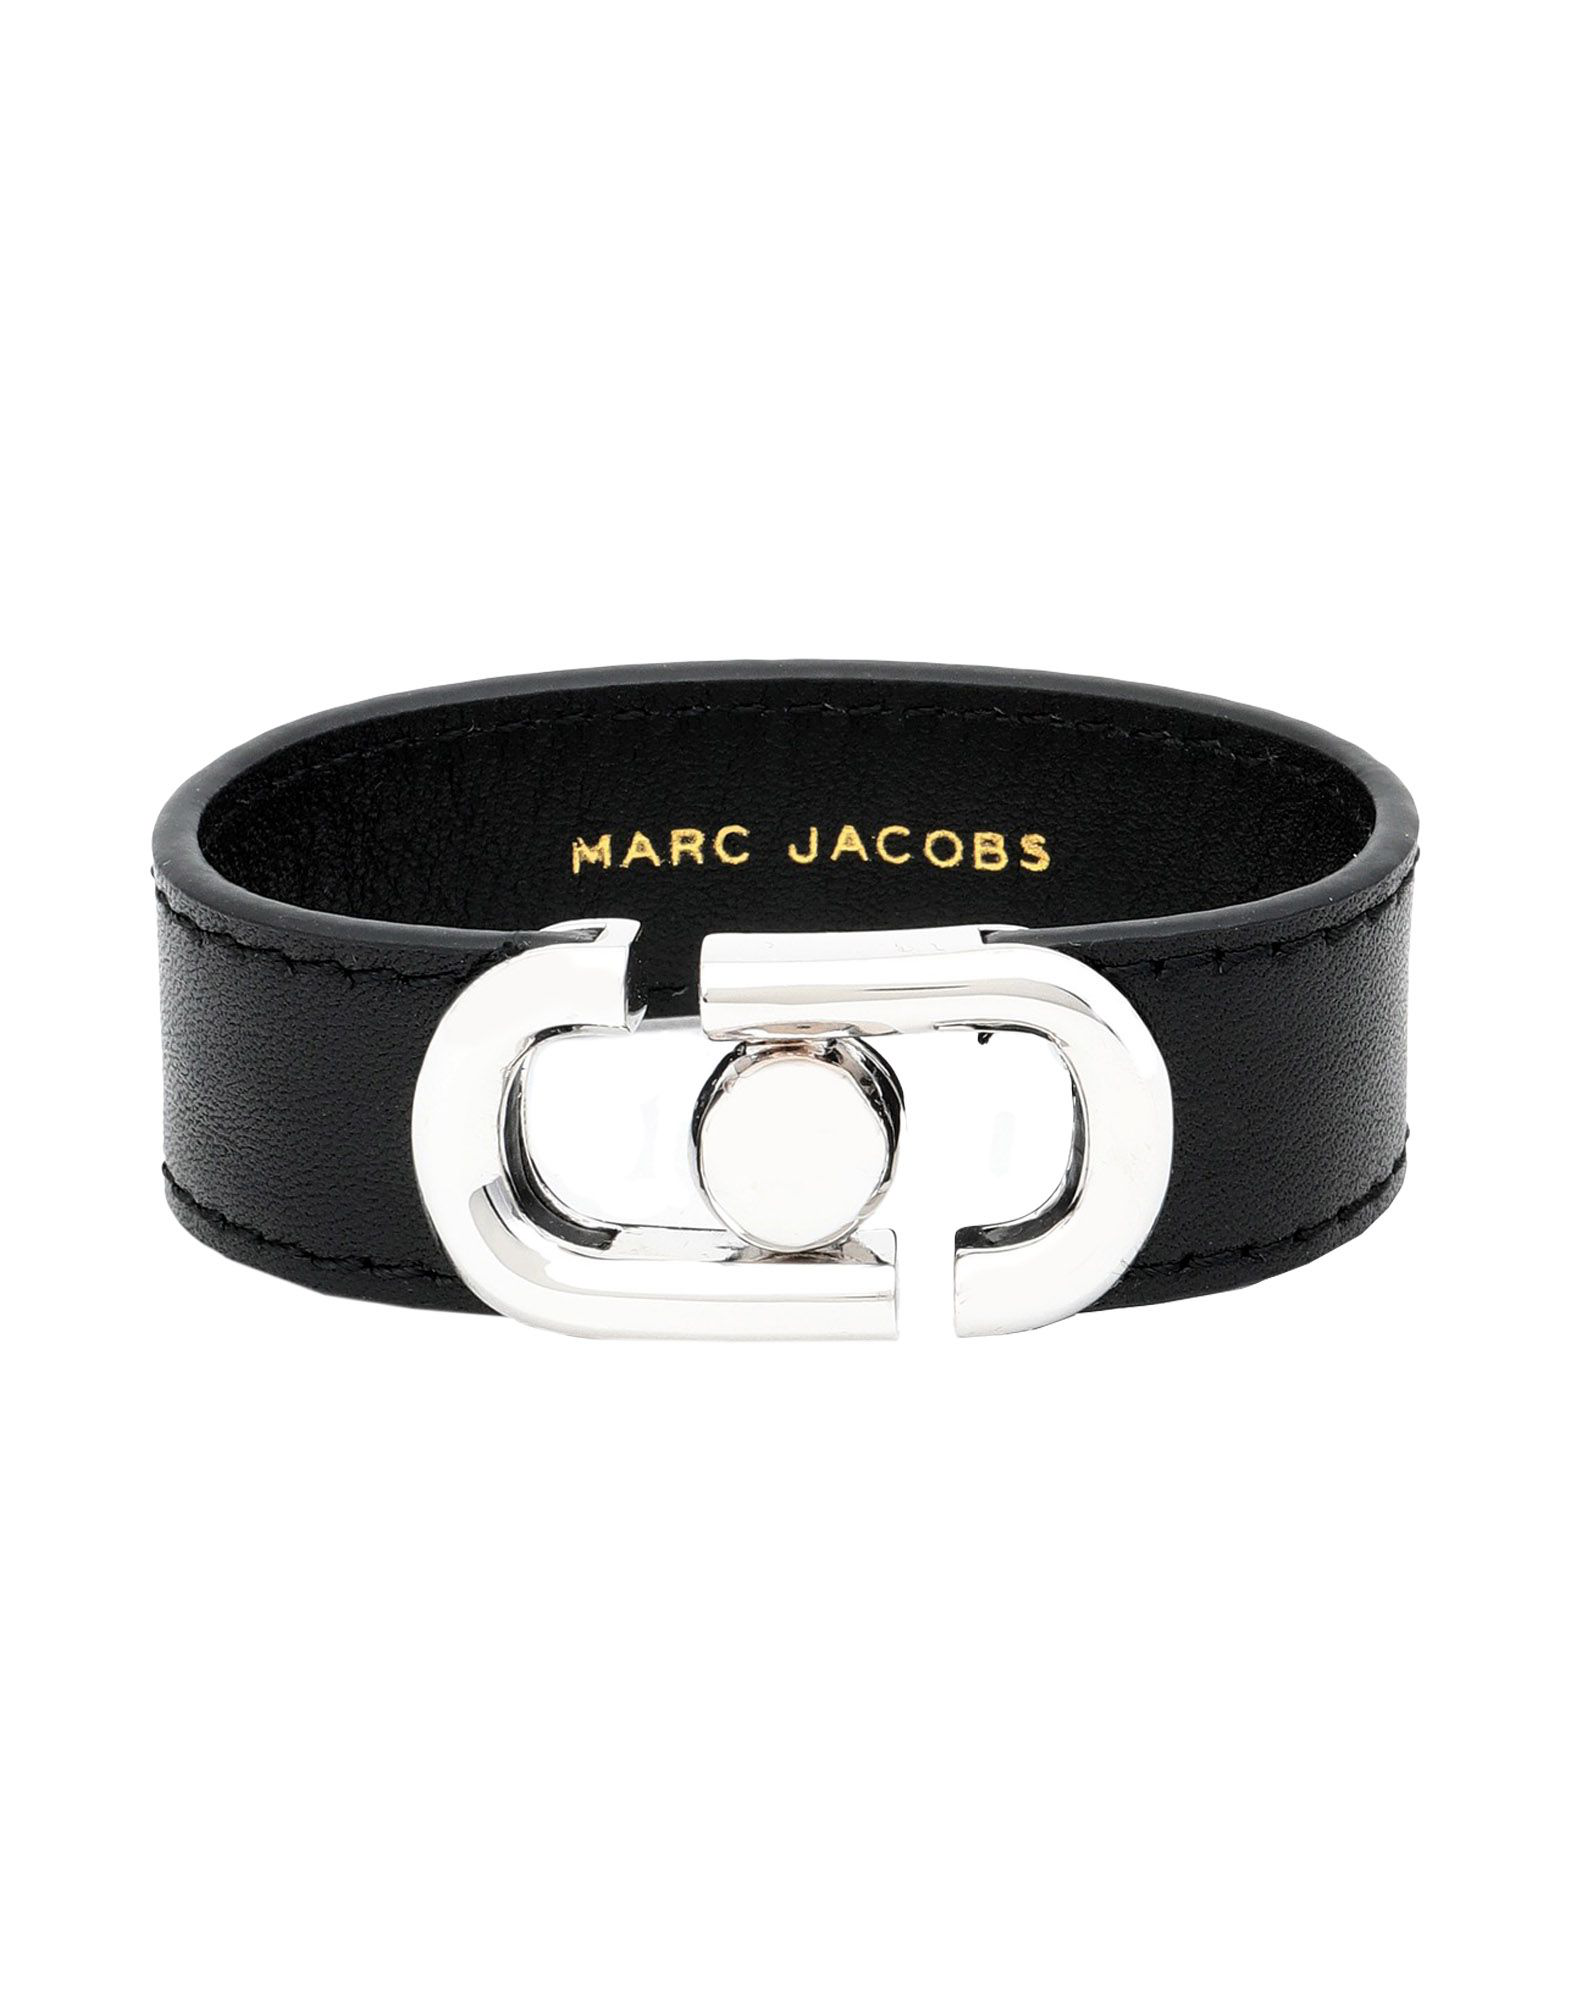 Marc Jacobs Bracelet In Black